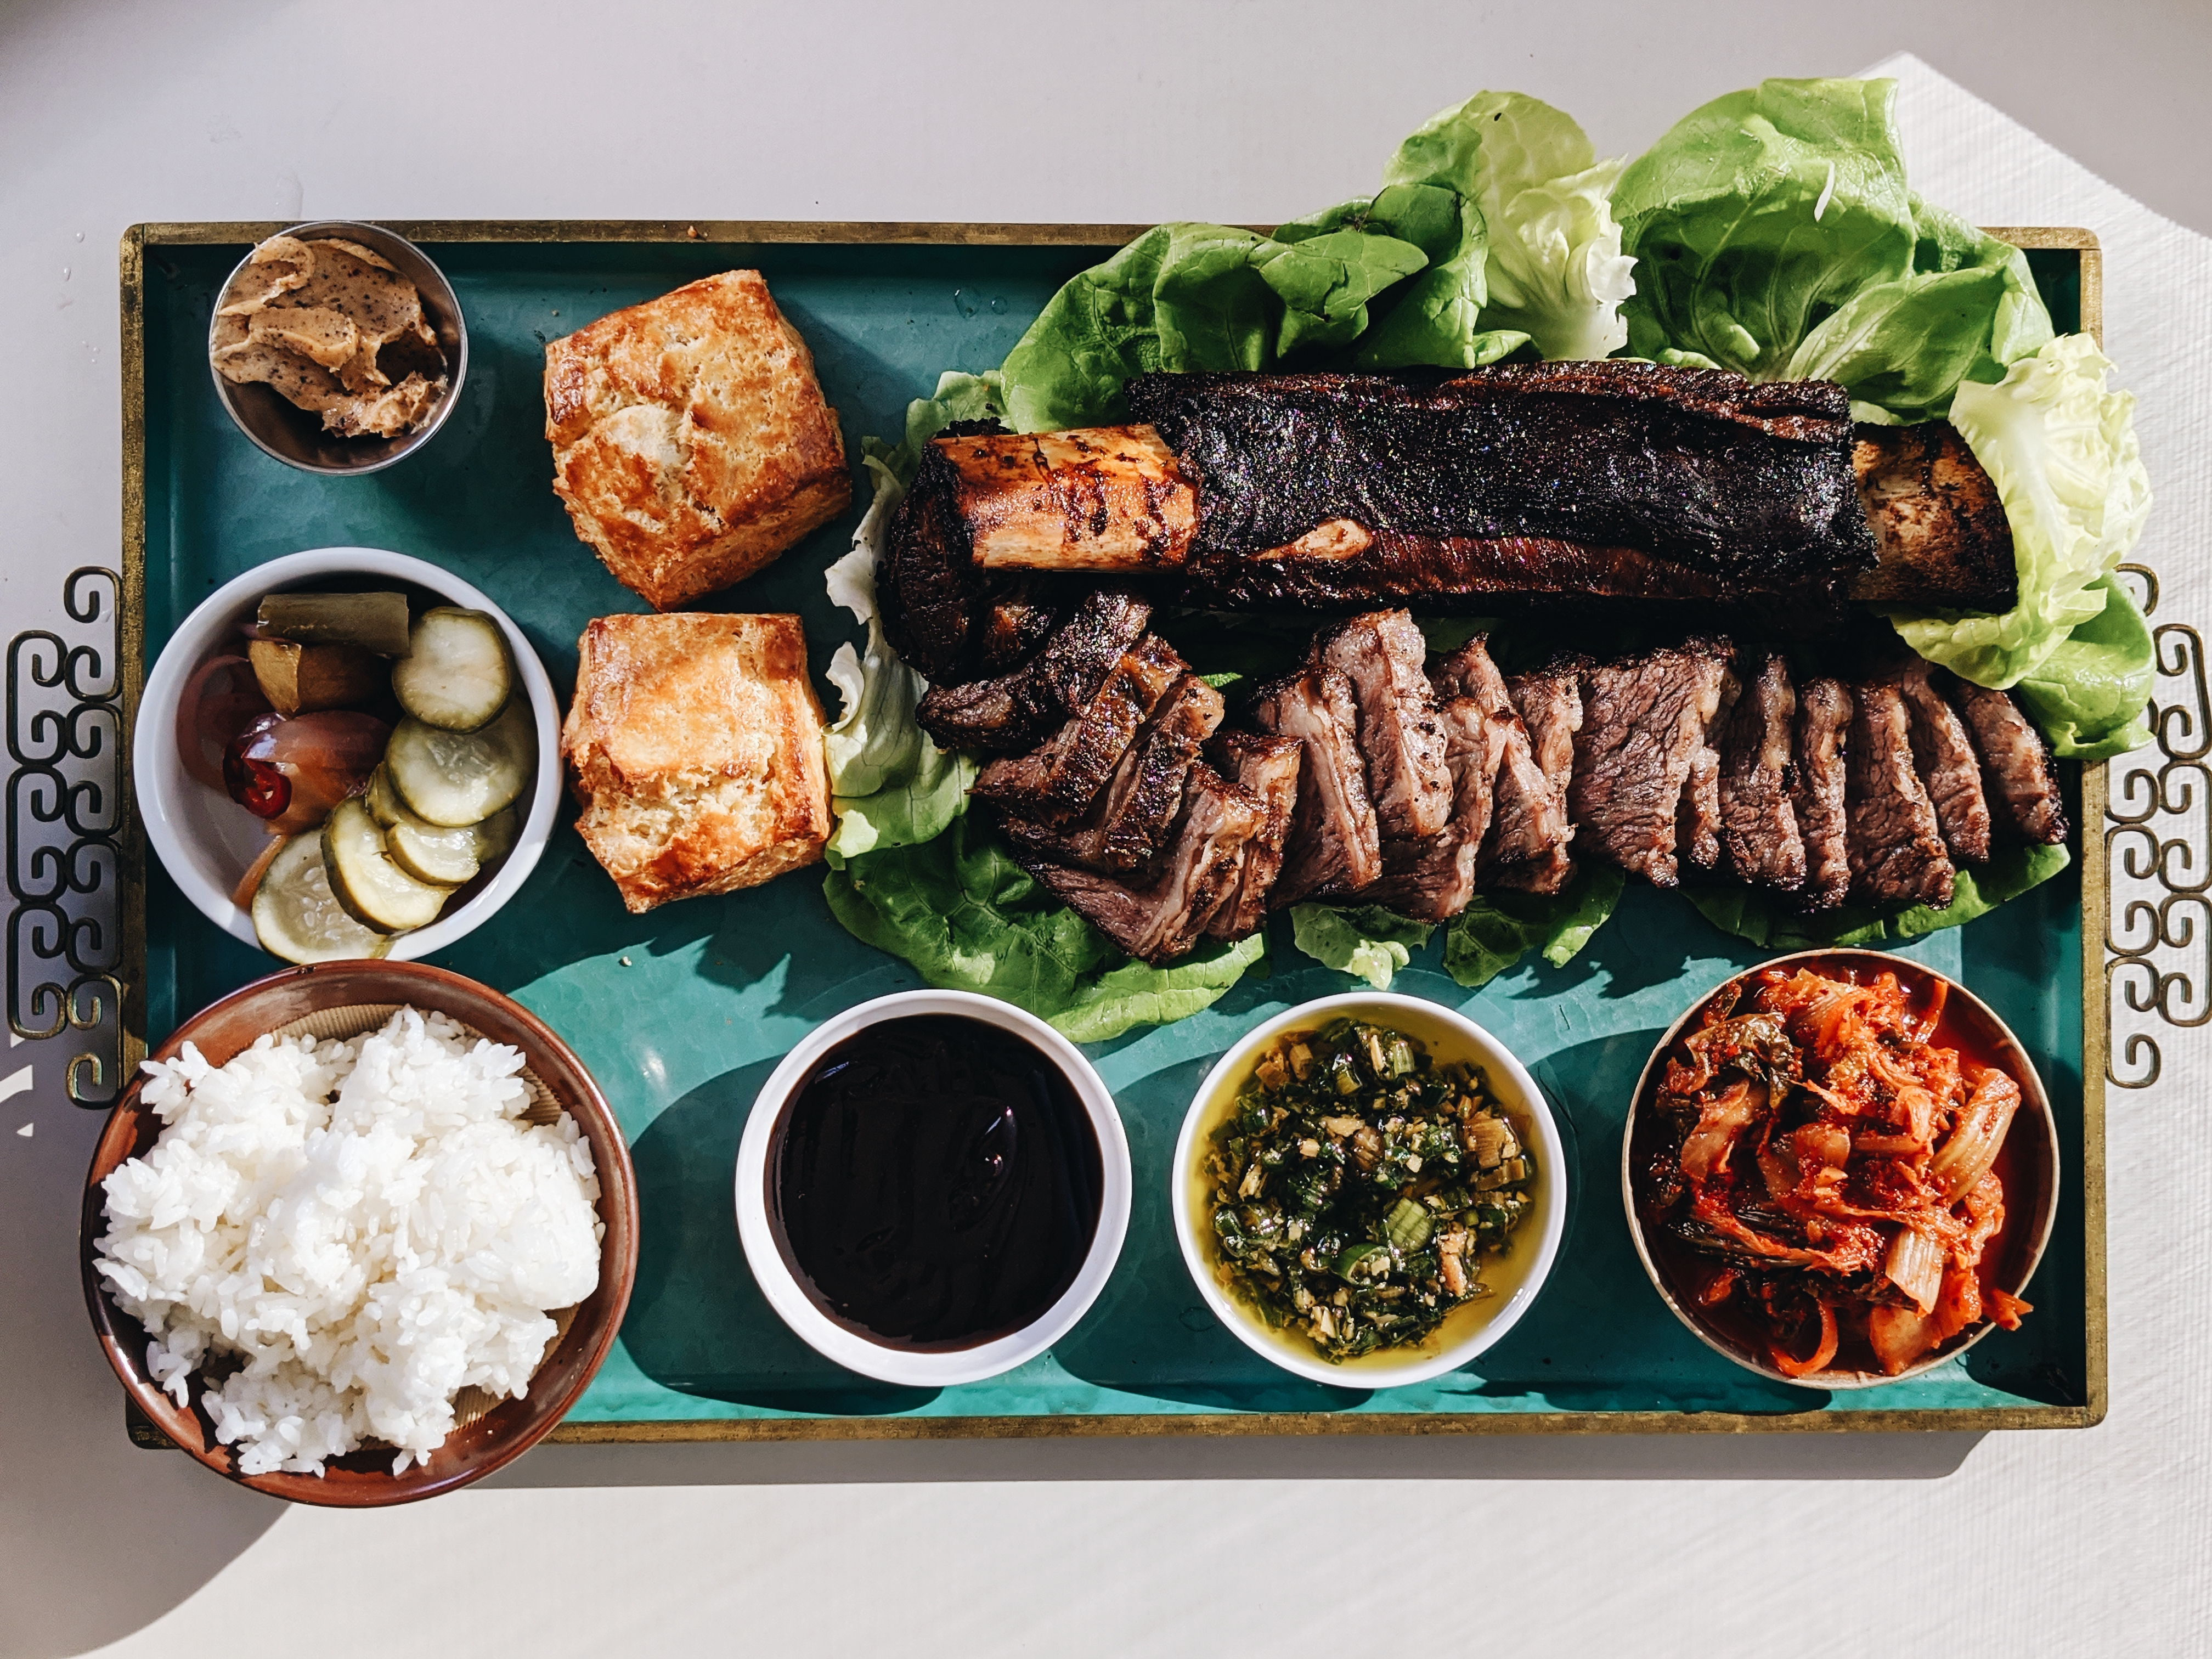 A tray of beef short ribs with kimchi, pickles, bibb lettuce, hoisin sauce, rice, ginger-scallion sauce at Bar King